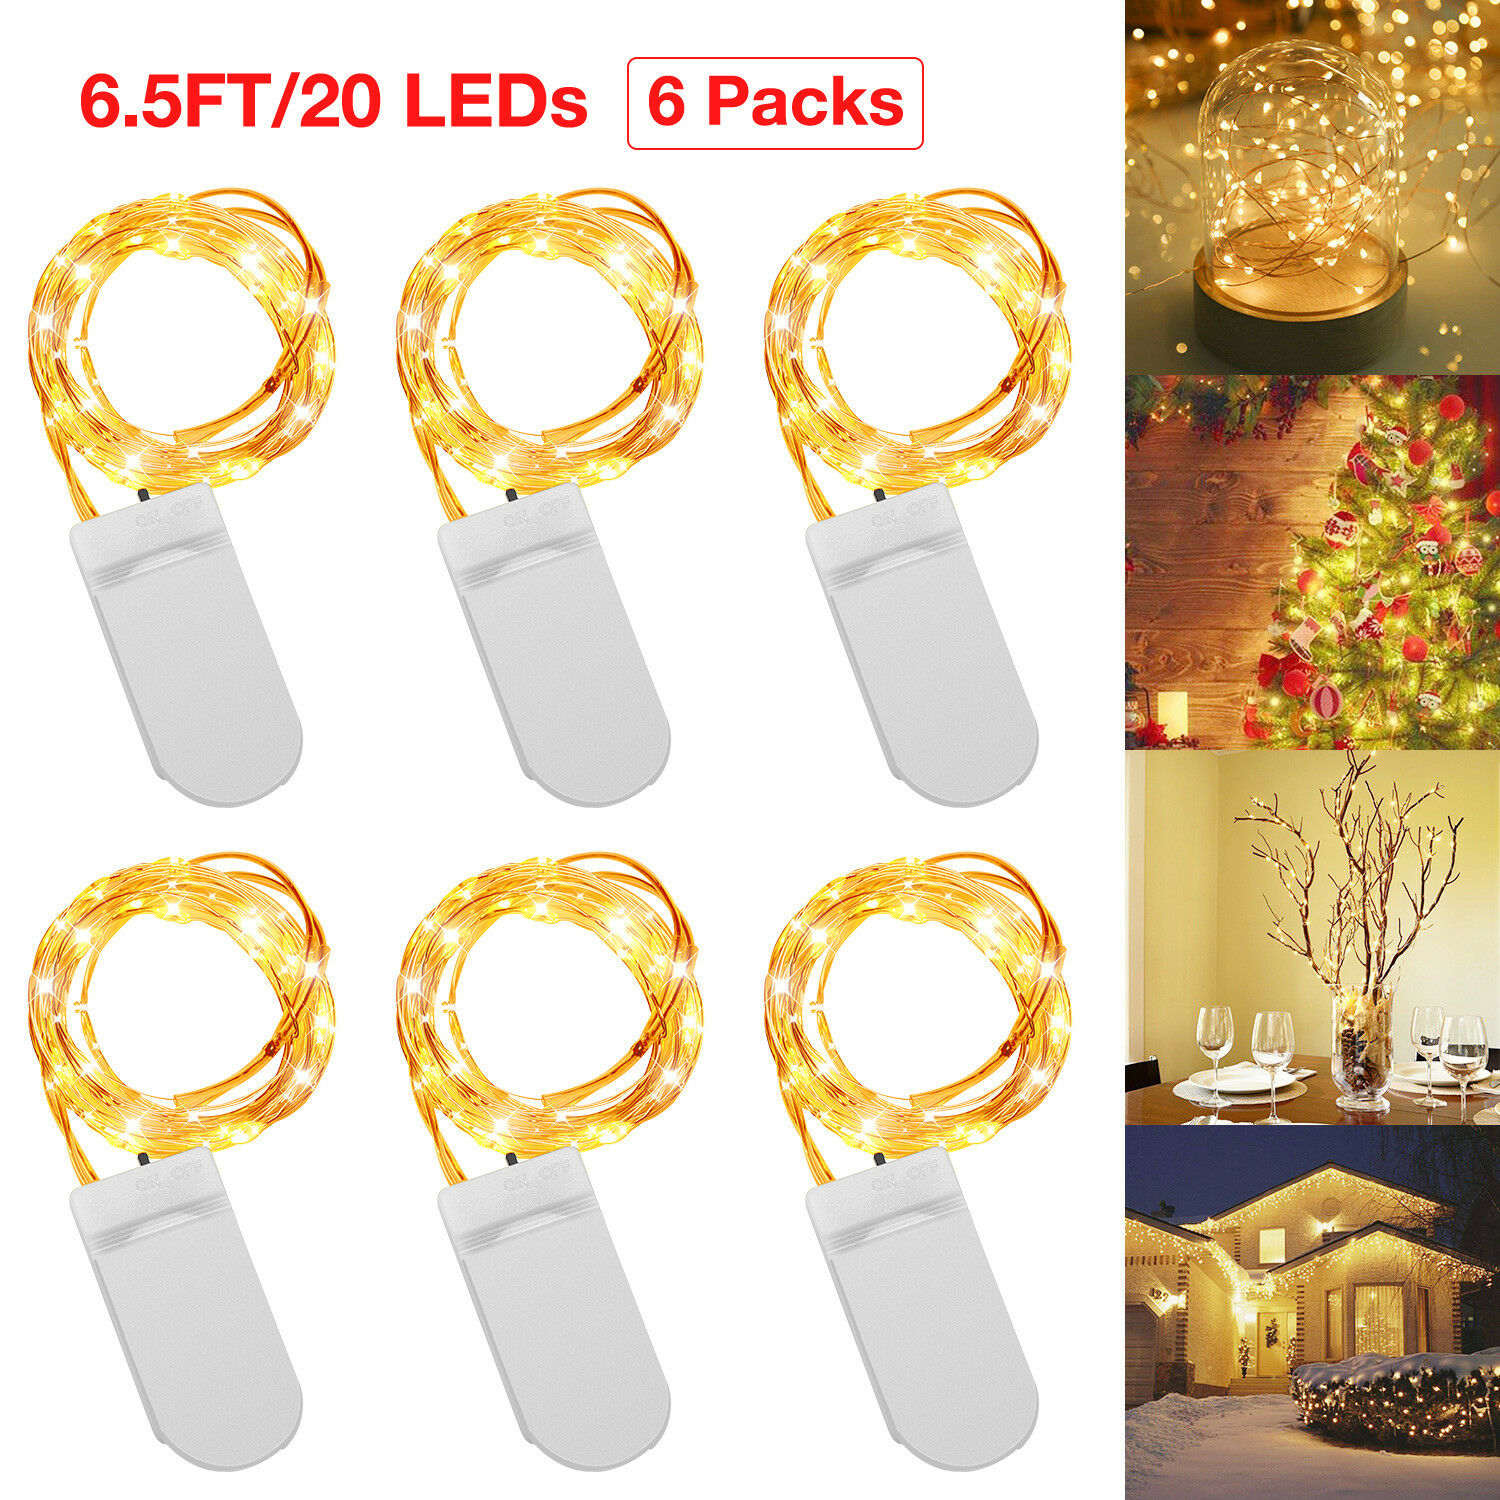 Купить 6PCS 2M 20 LED Copper Battery Operated Wire String Fairy Lights Wedding Decor US